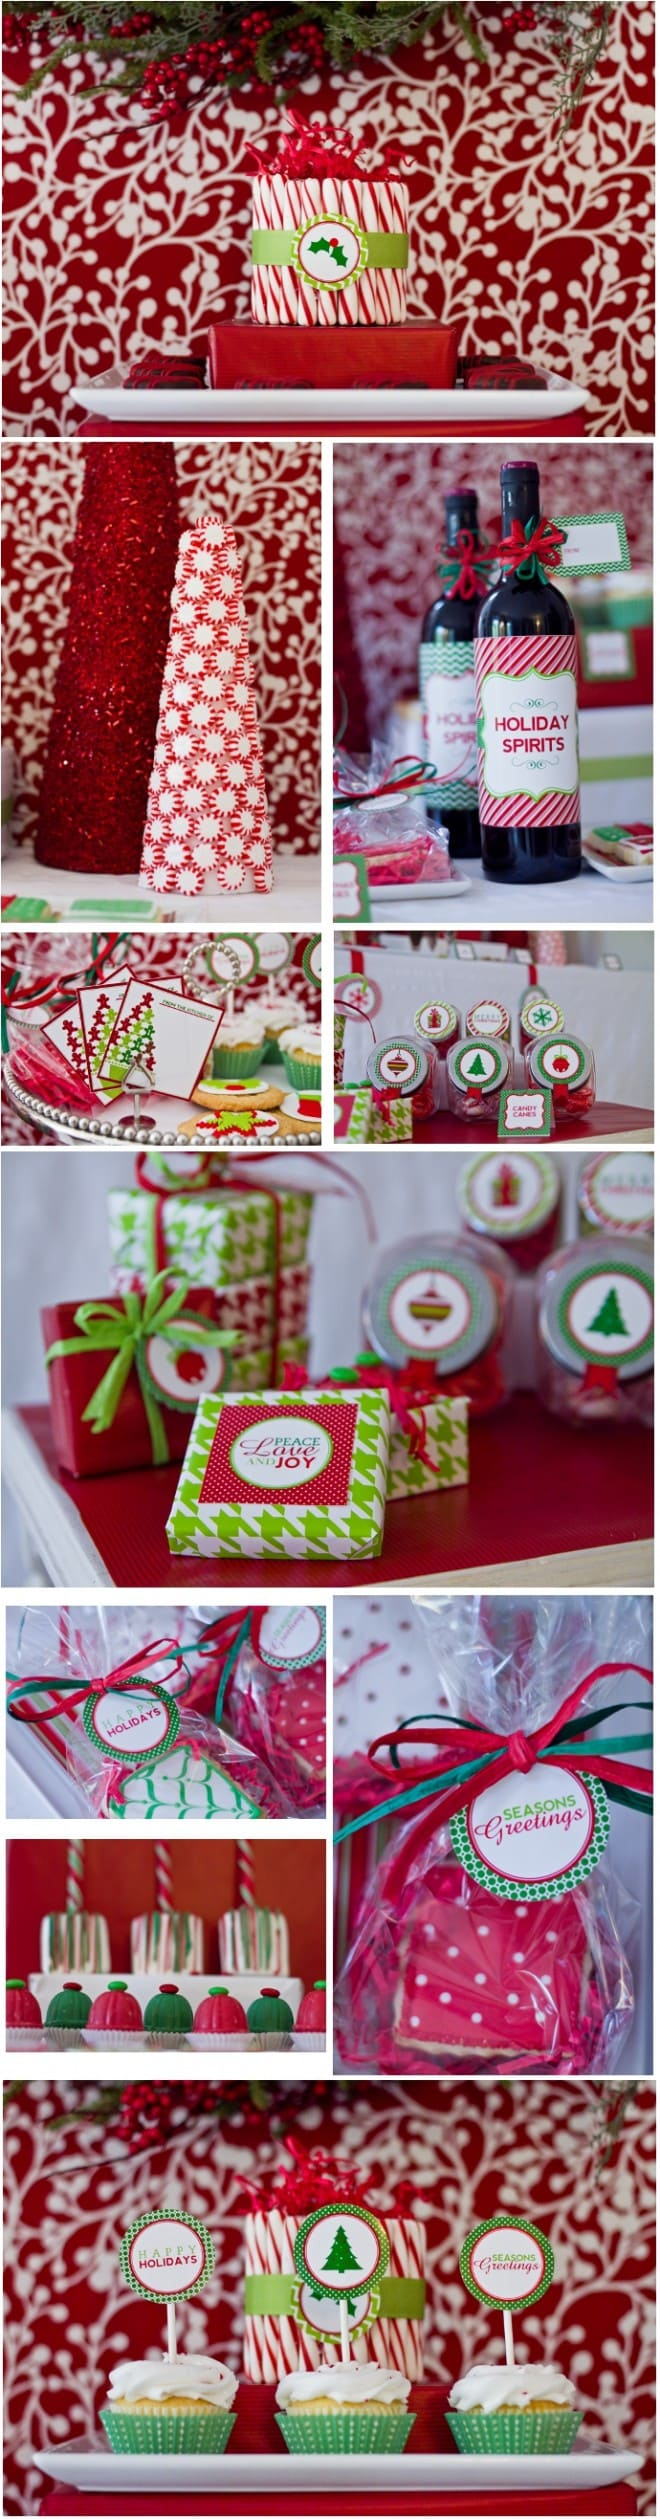 classic red and green holiday party printables